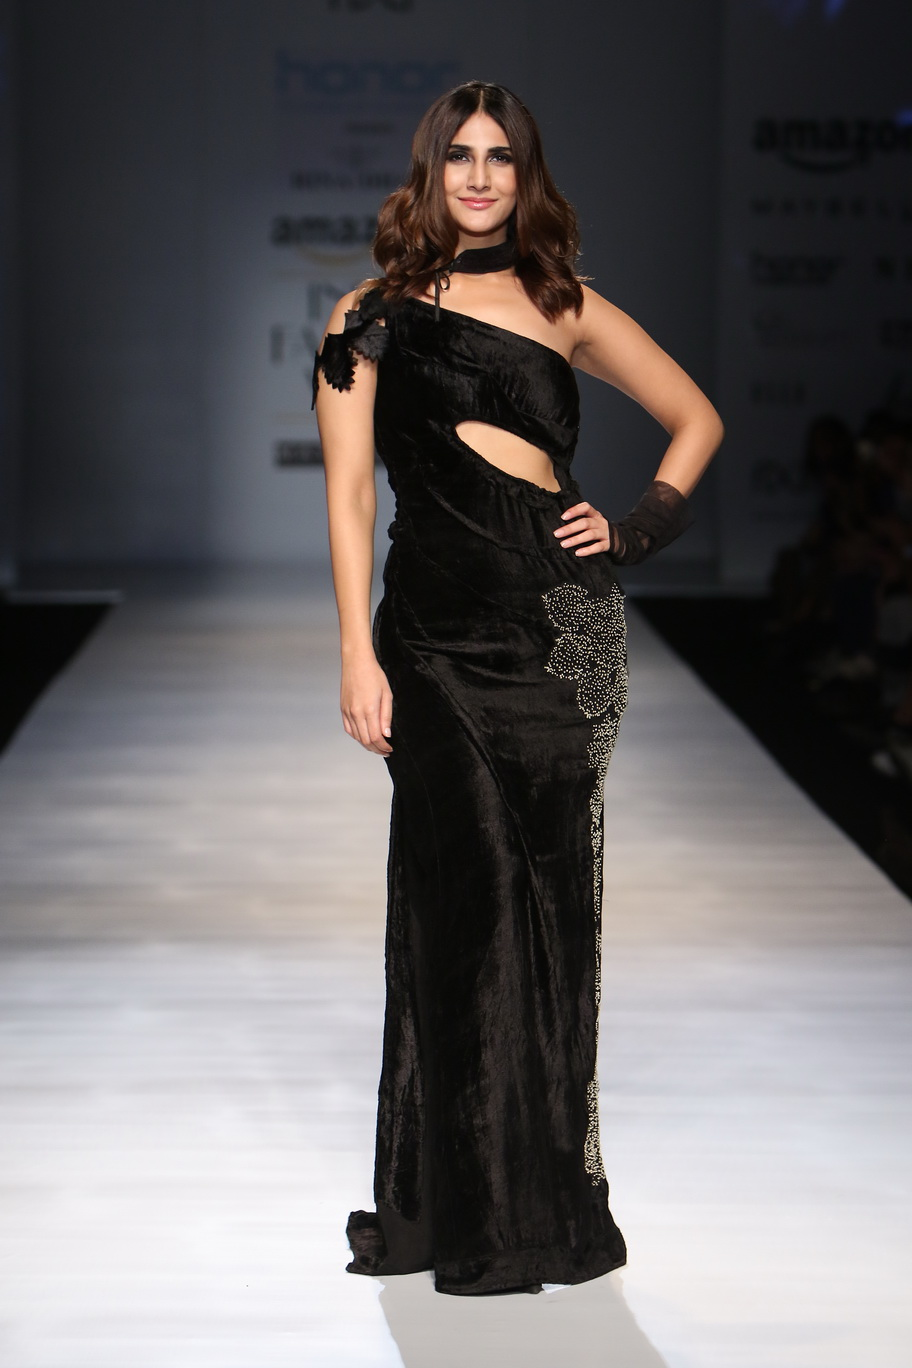 #1 Vaani Kapoor Turns Showstopper